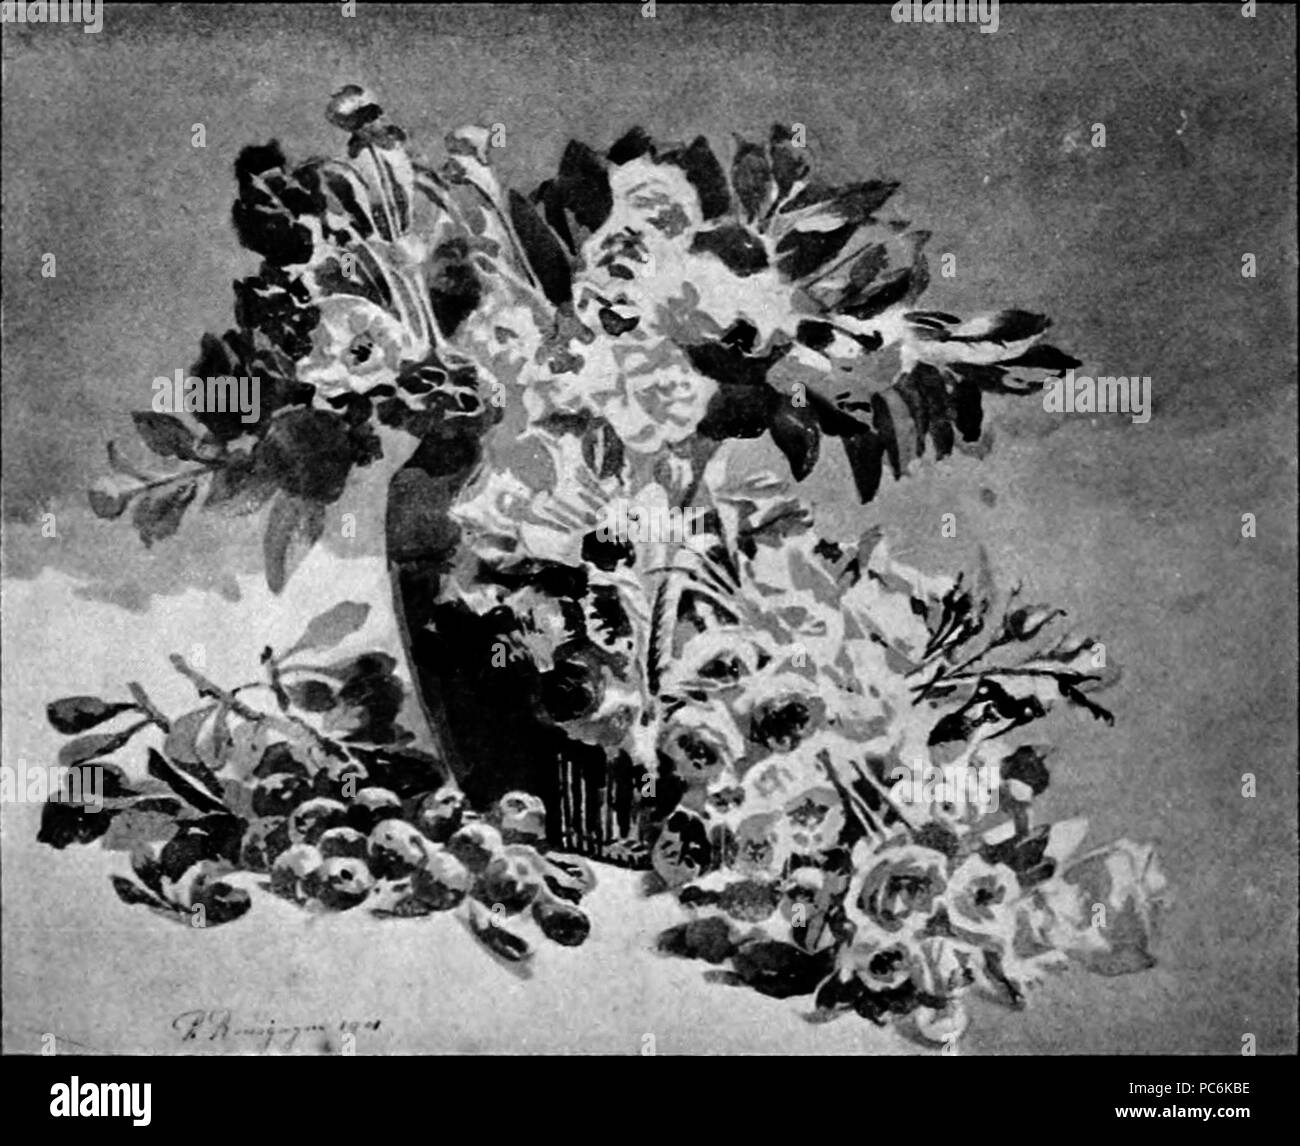 Pierre Bourgogne Pierre Bourgogne Black And White Stock Photos Images Alamy